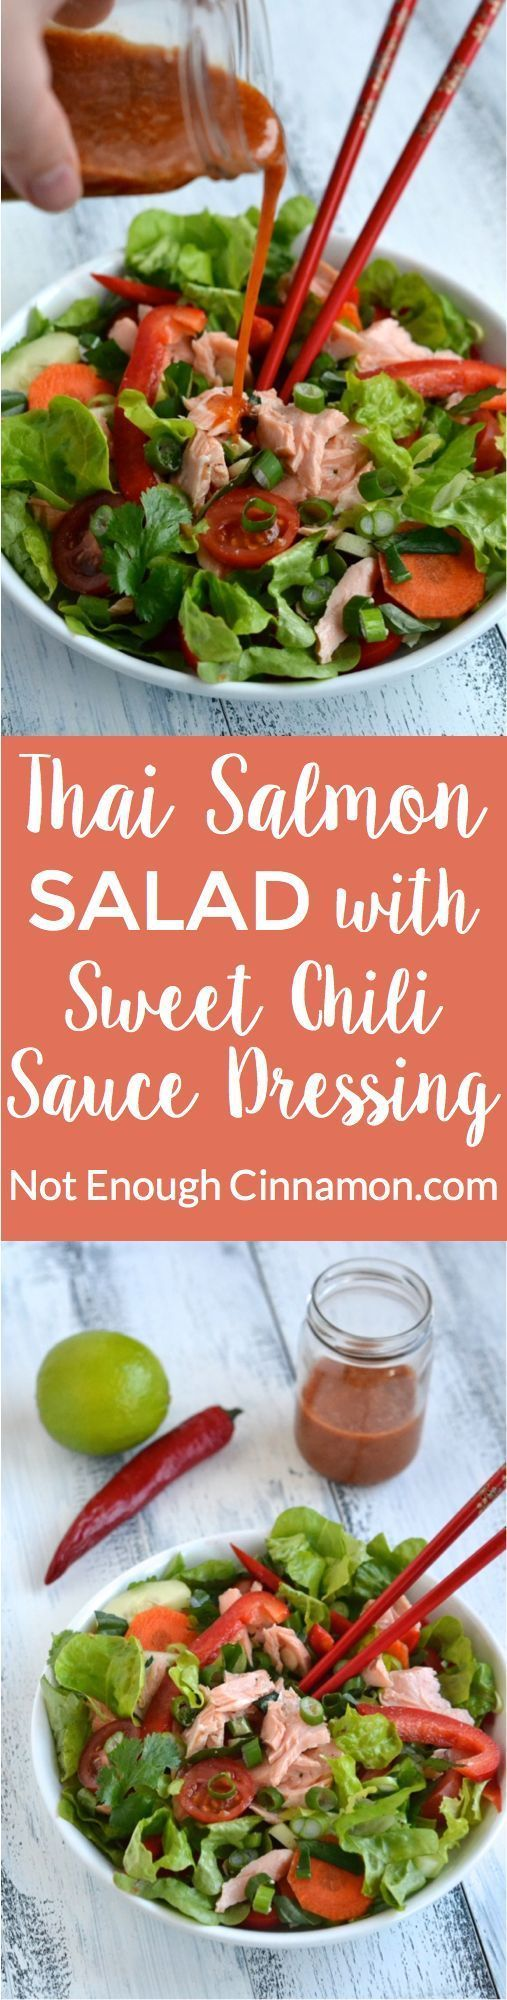 Thai Salmon Salad with Sweet Chili Sauce Dressing - find the recipe on NotEnoughCinnamon.com